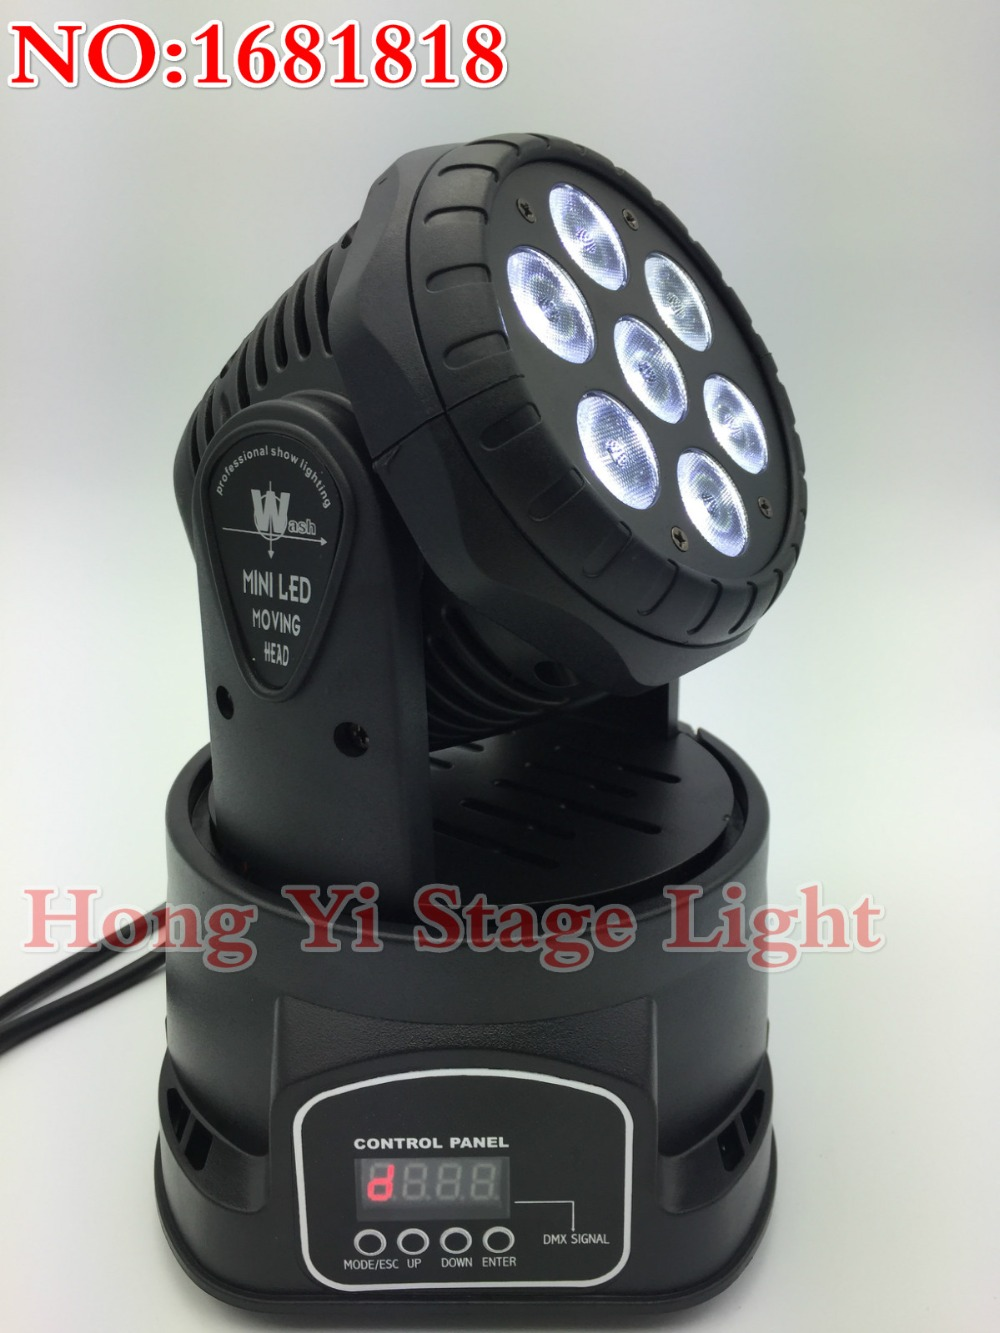 2015 Top Seling 2pcs/lot Led dmx wash 7X12W mini moving head High Brightness Moving Head Mini Wash Light,Factory free shipping(China (Mainland))